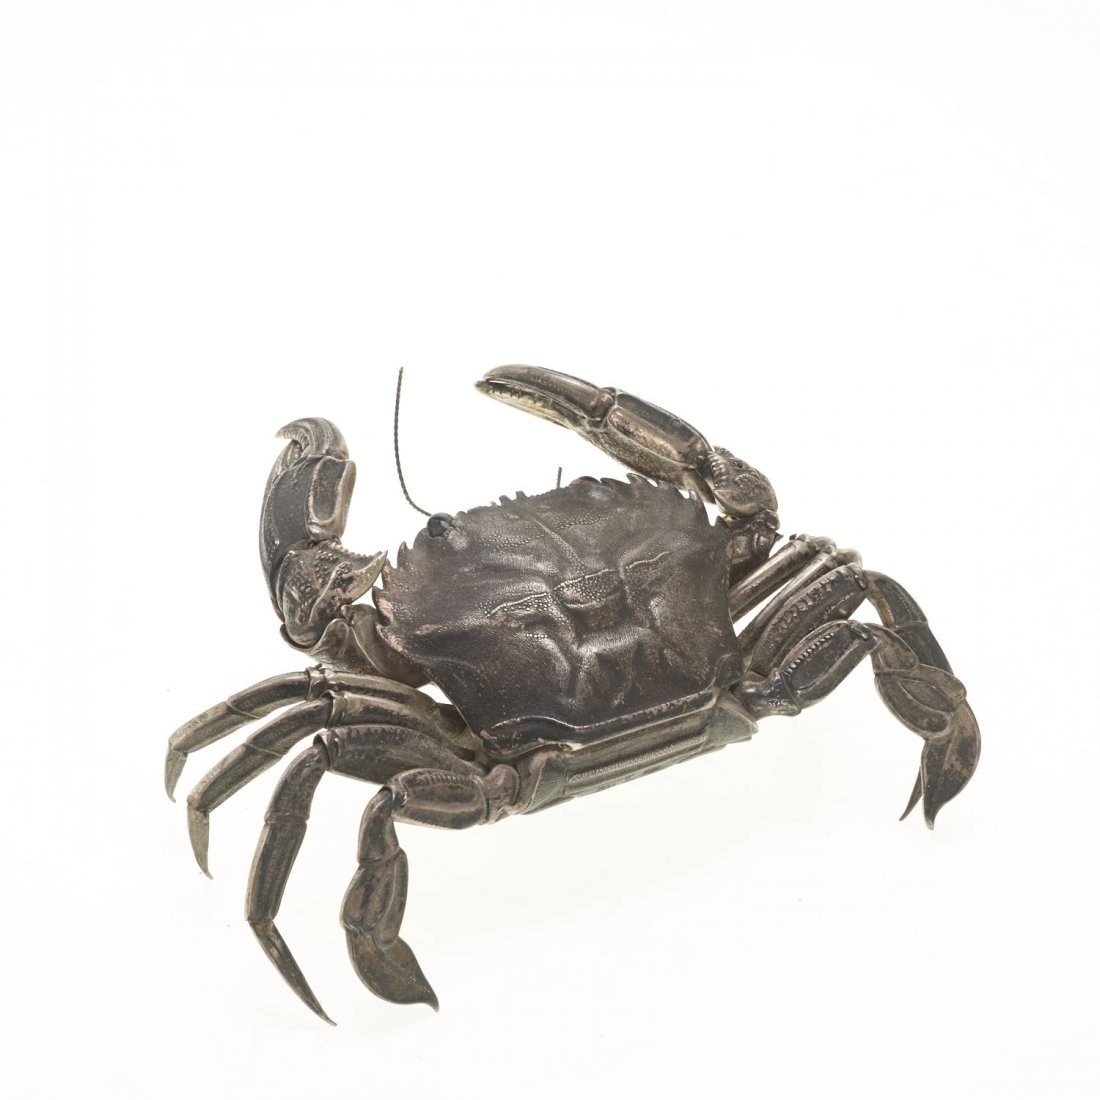 Spanish silver articulated model of a crab - 3